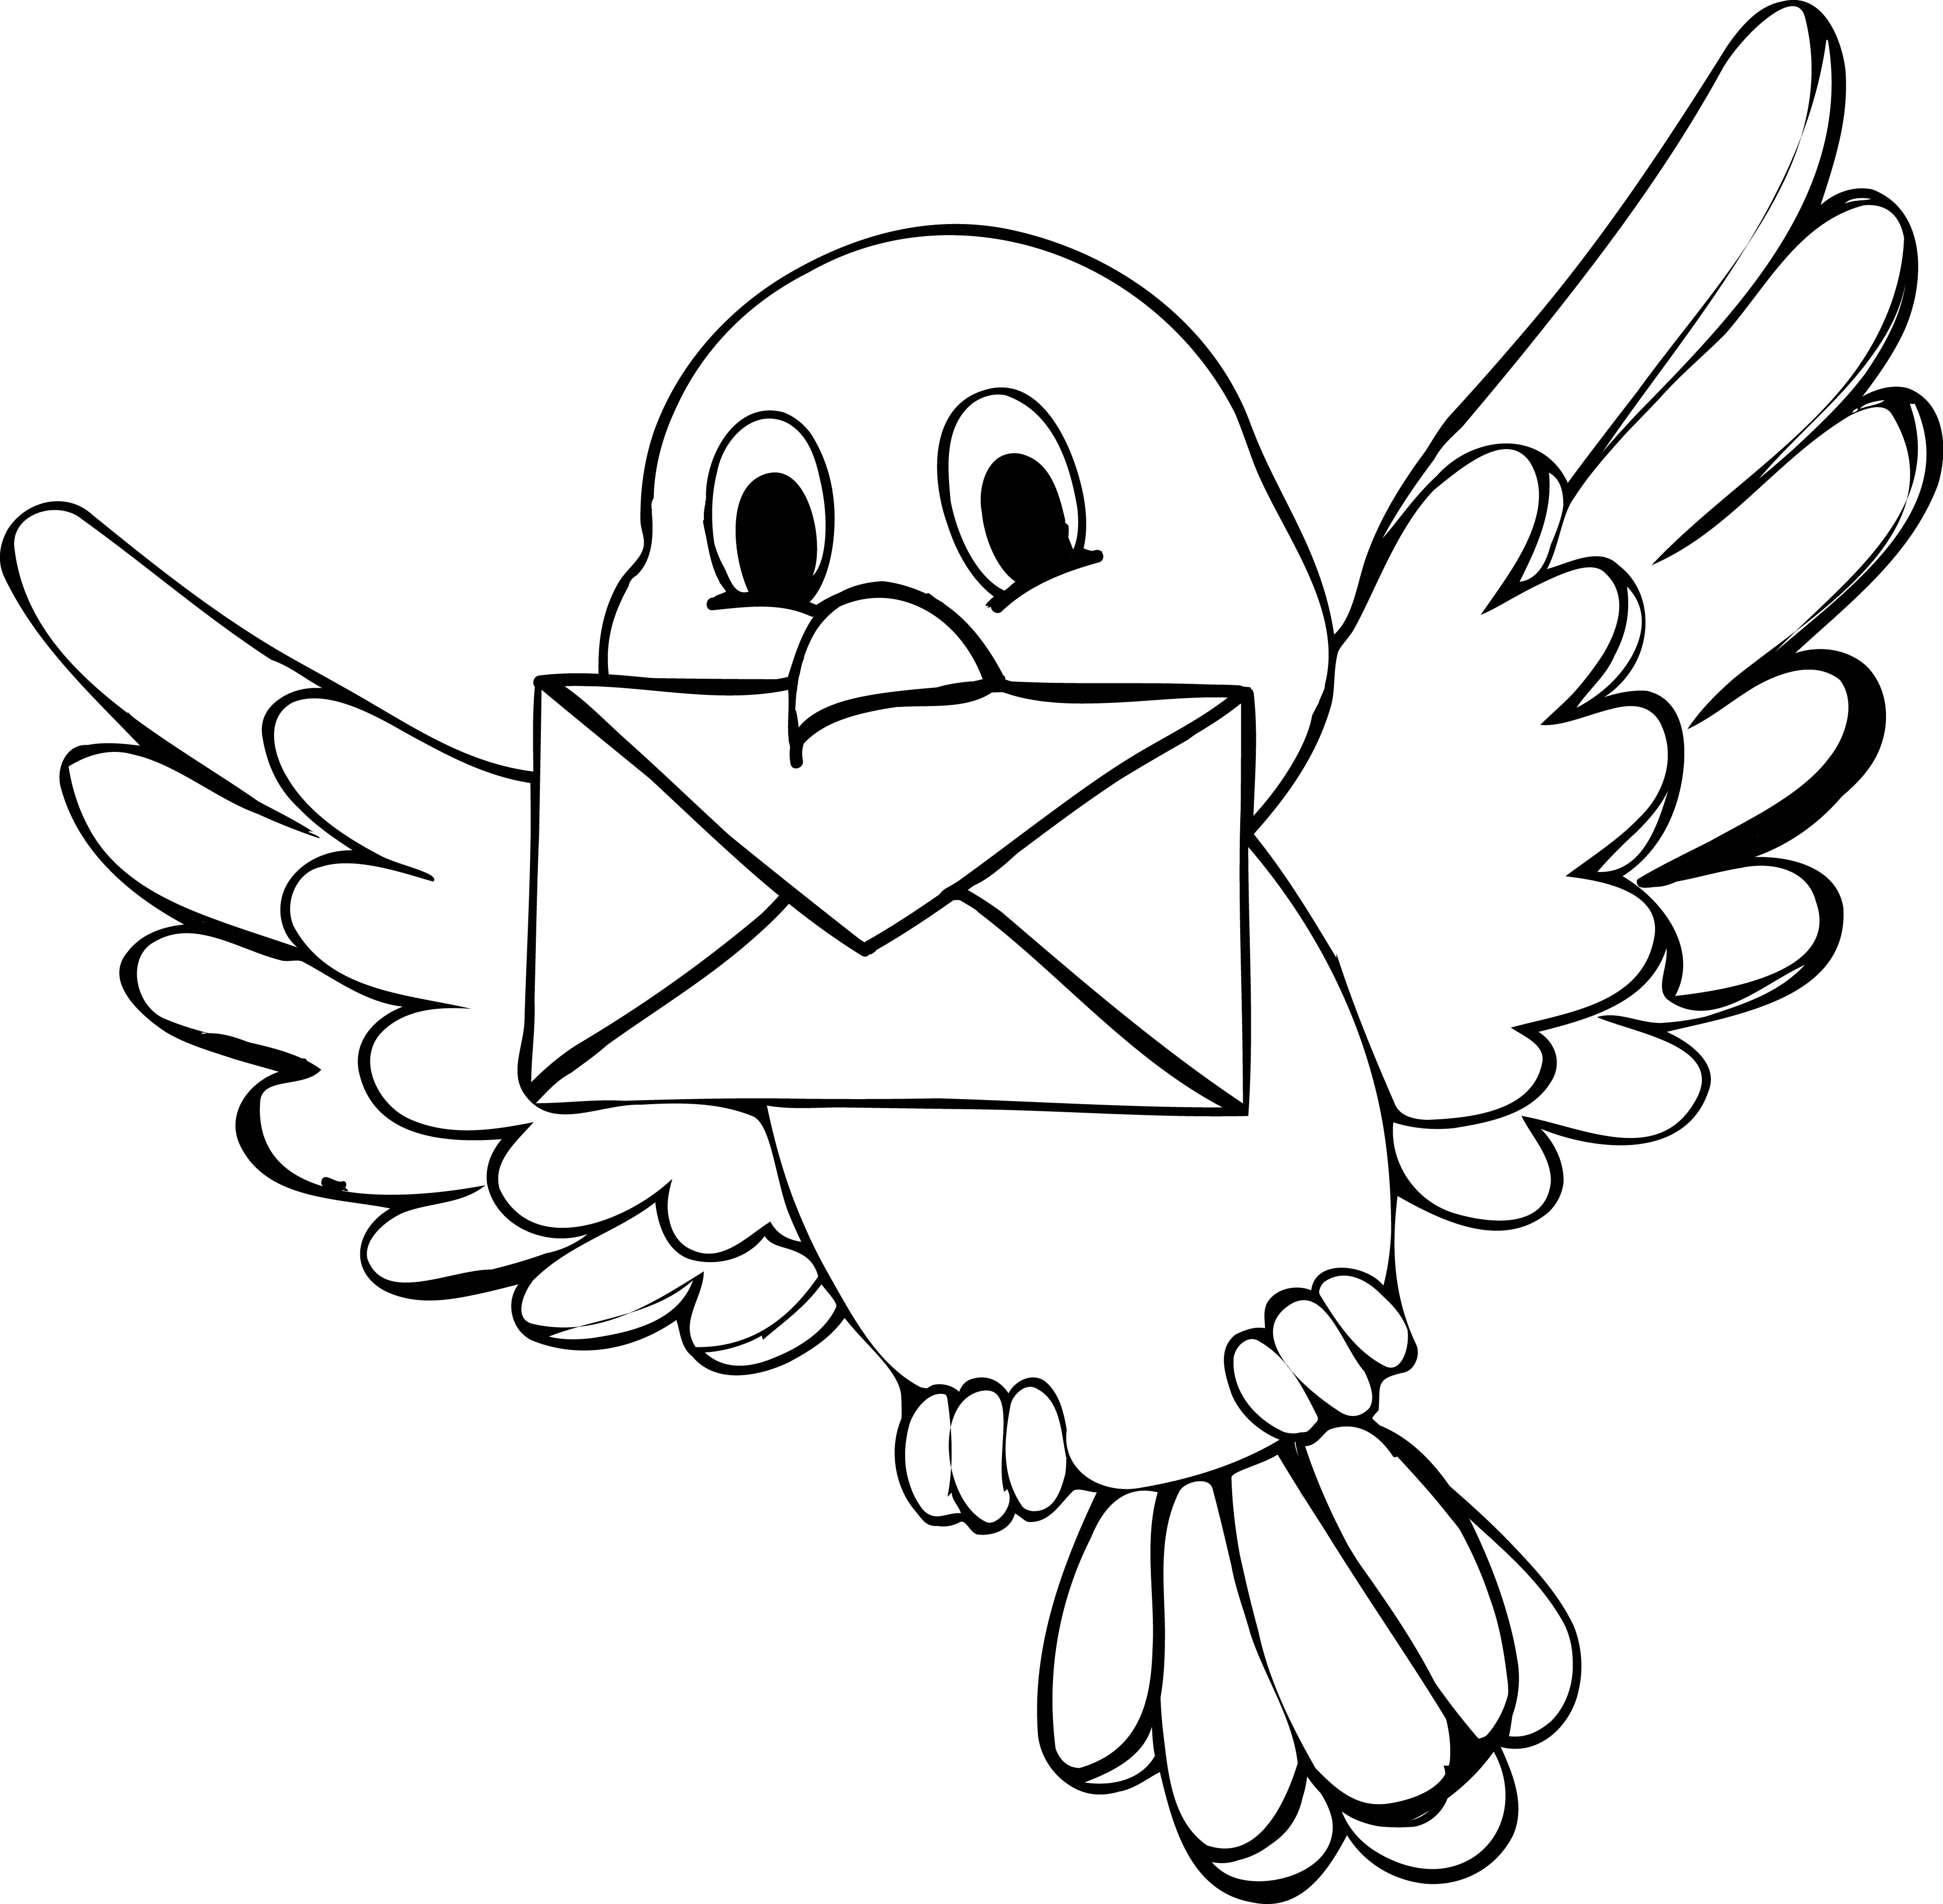 cute bird coloring page wecoloringpage